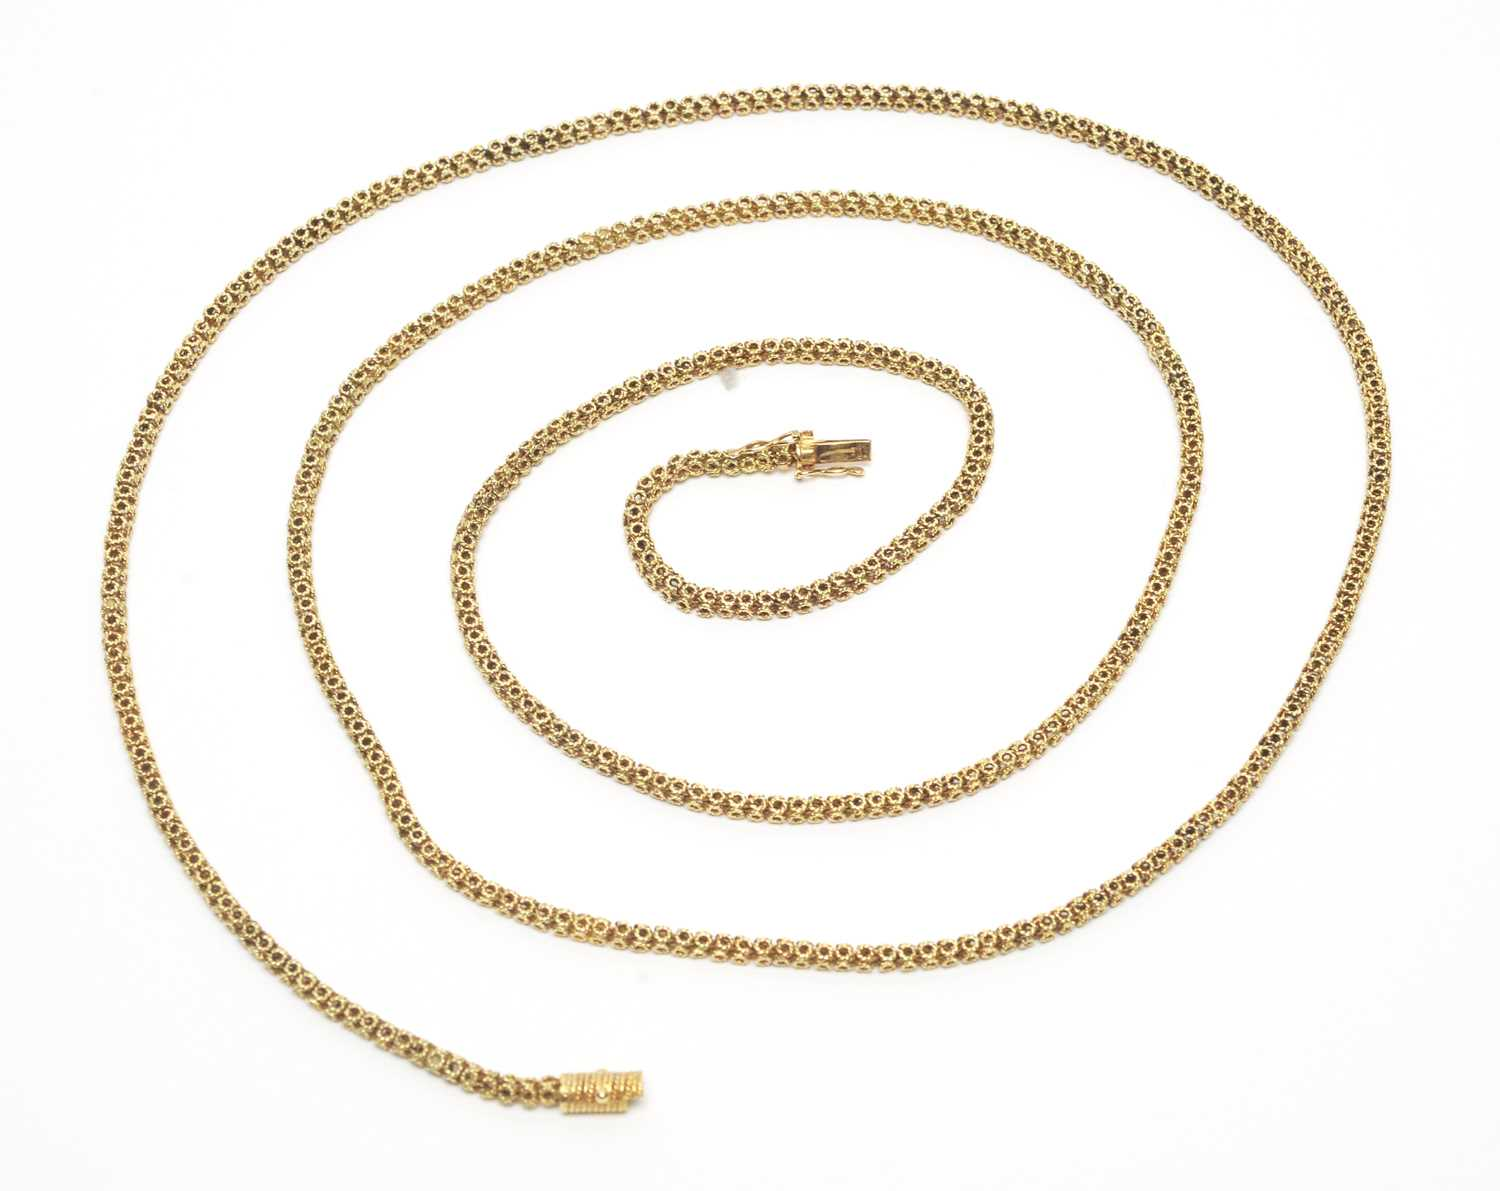 Lot 11 - A 14ct yellow gold necklace